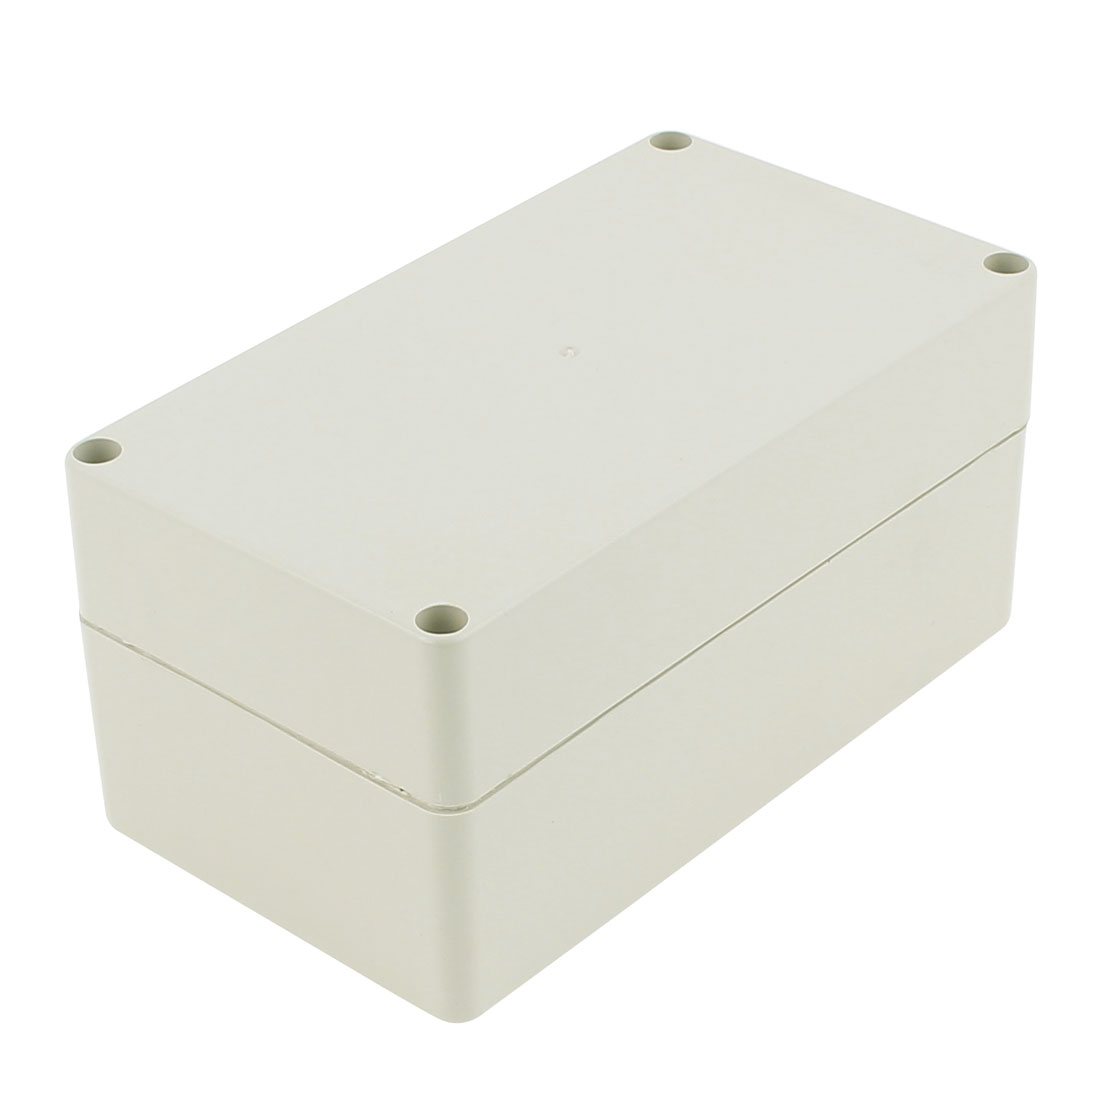 158 x 90 x 75mm Dustproof IP65 Junction Box DIY Terminal Connecting Enclosure